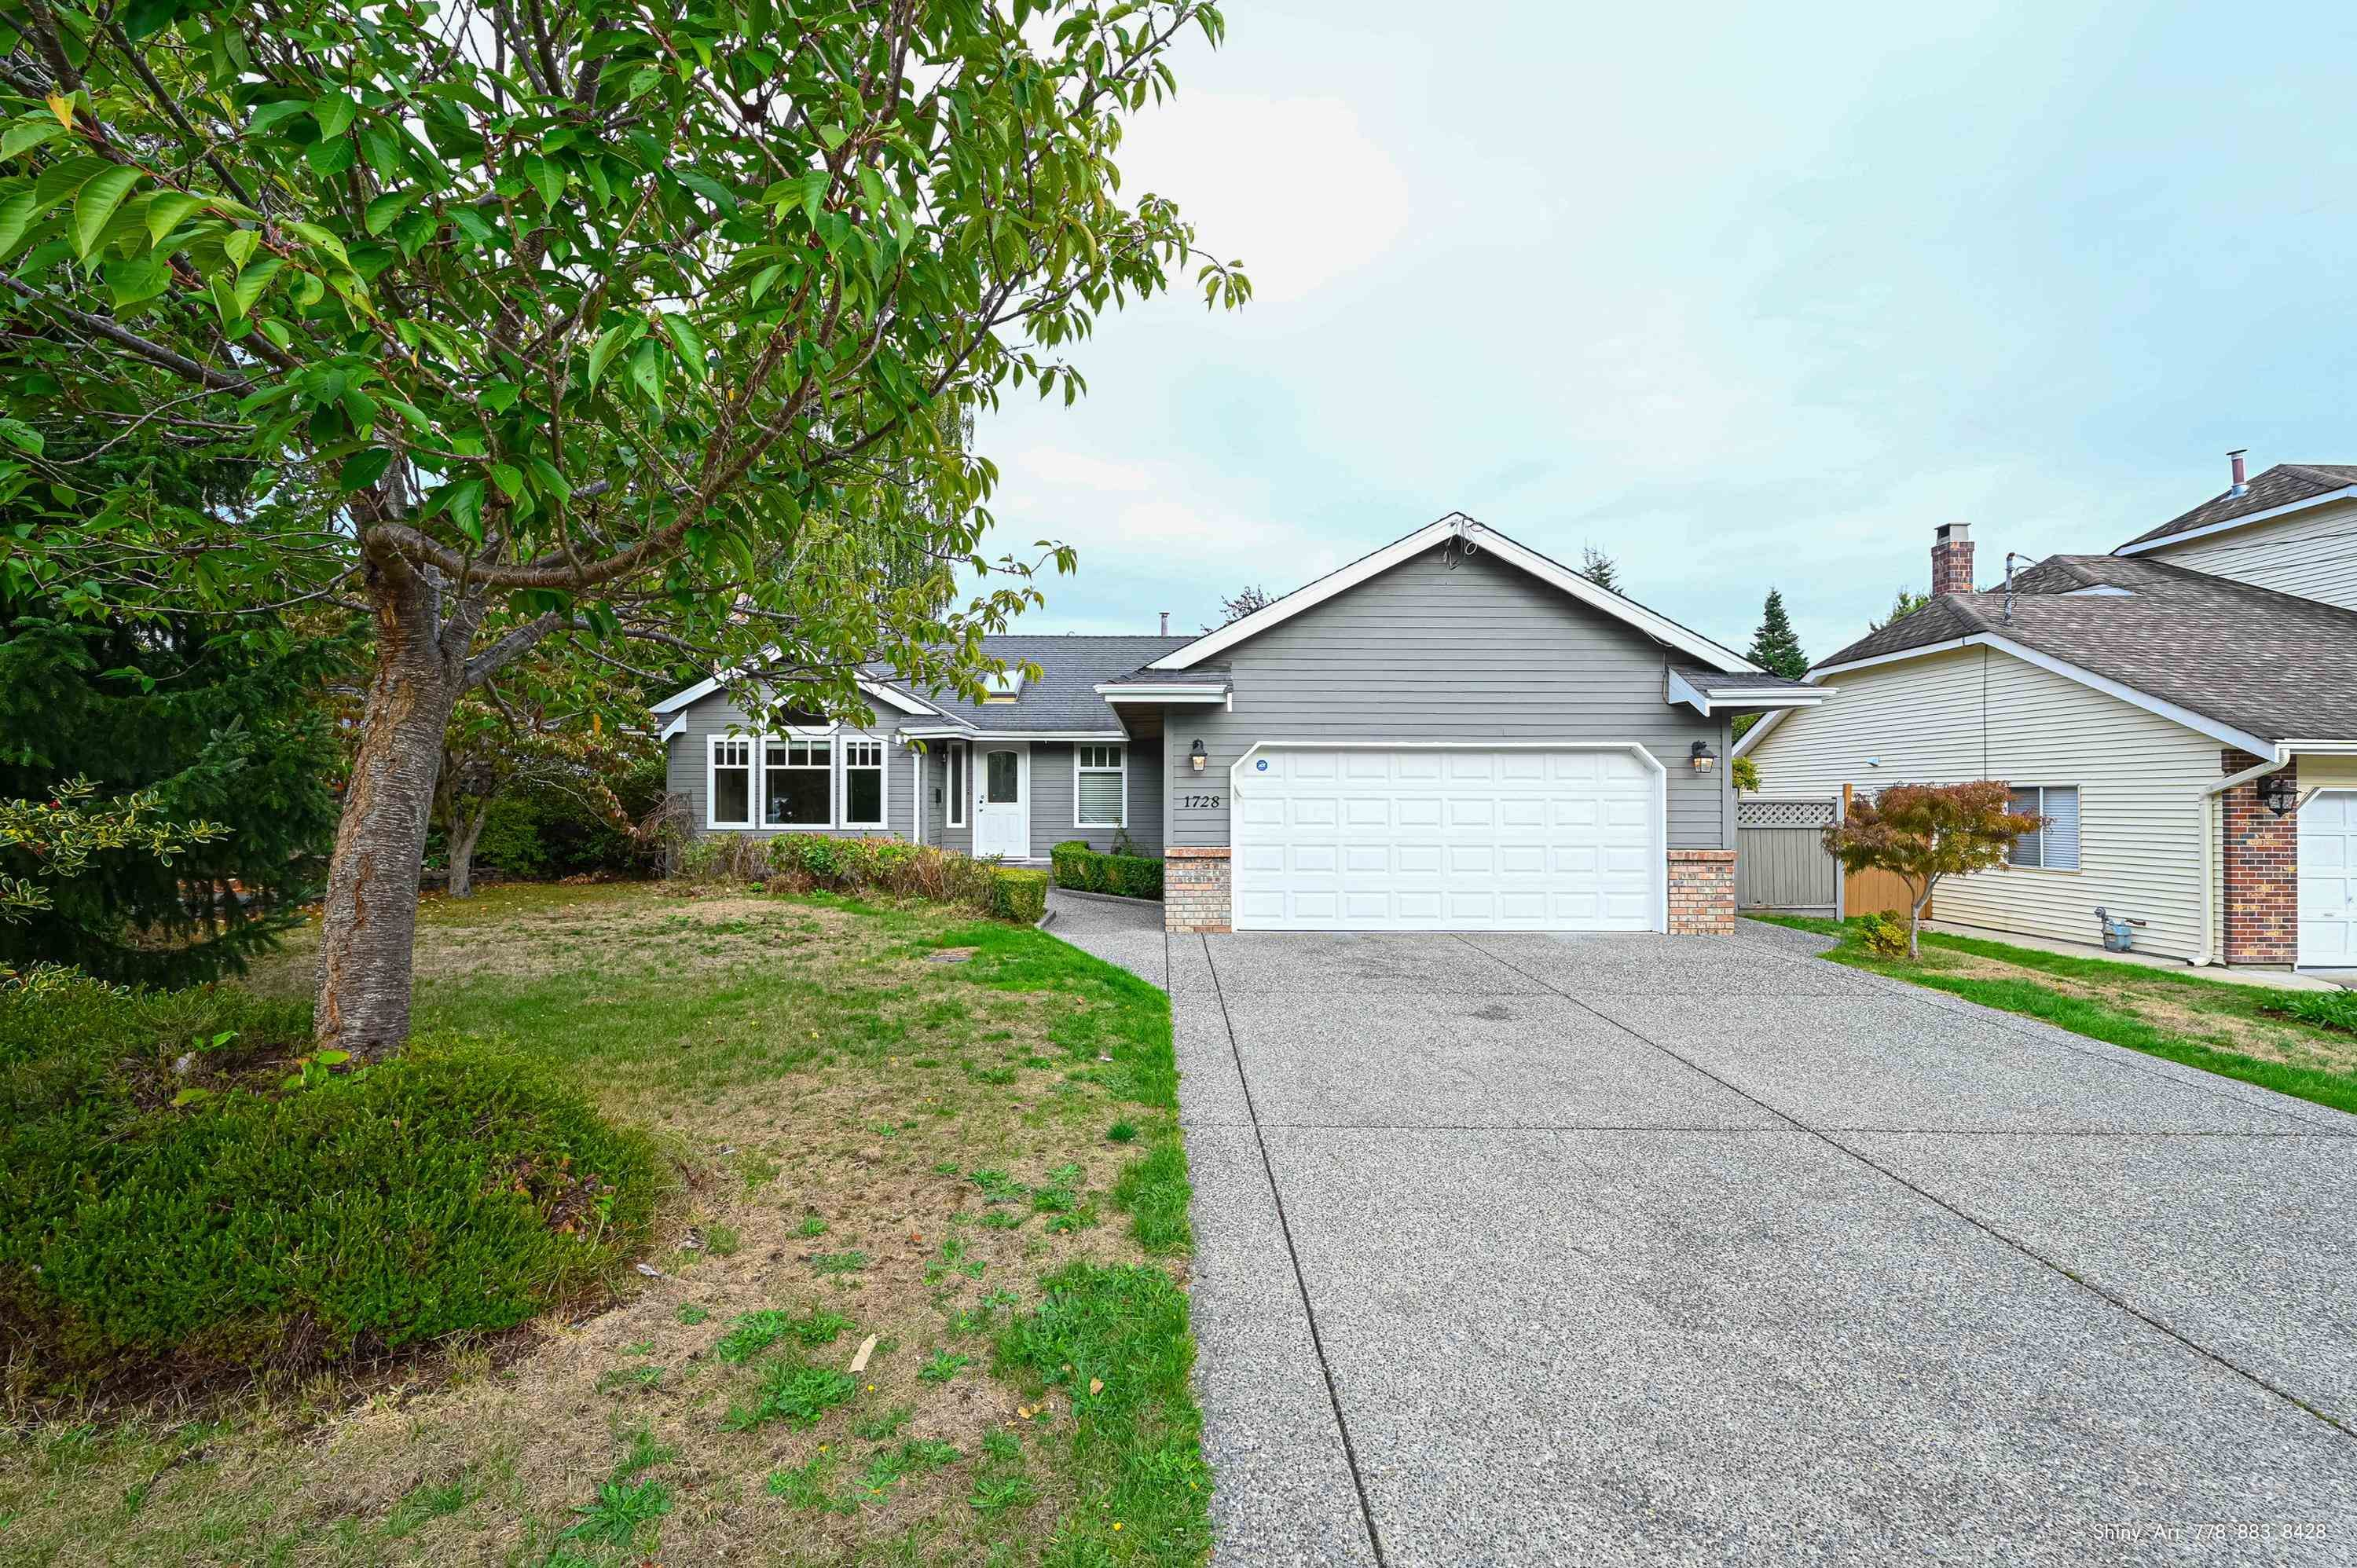 Main Photo: 1728 130 Street in Surrey: Crescent Bch Ocean Pk. House for sale (South Surrey White Rock)  : MLS®# R2618602